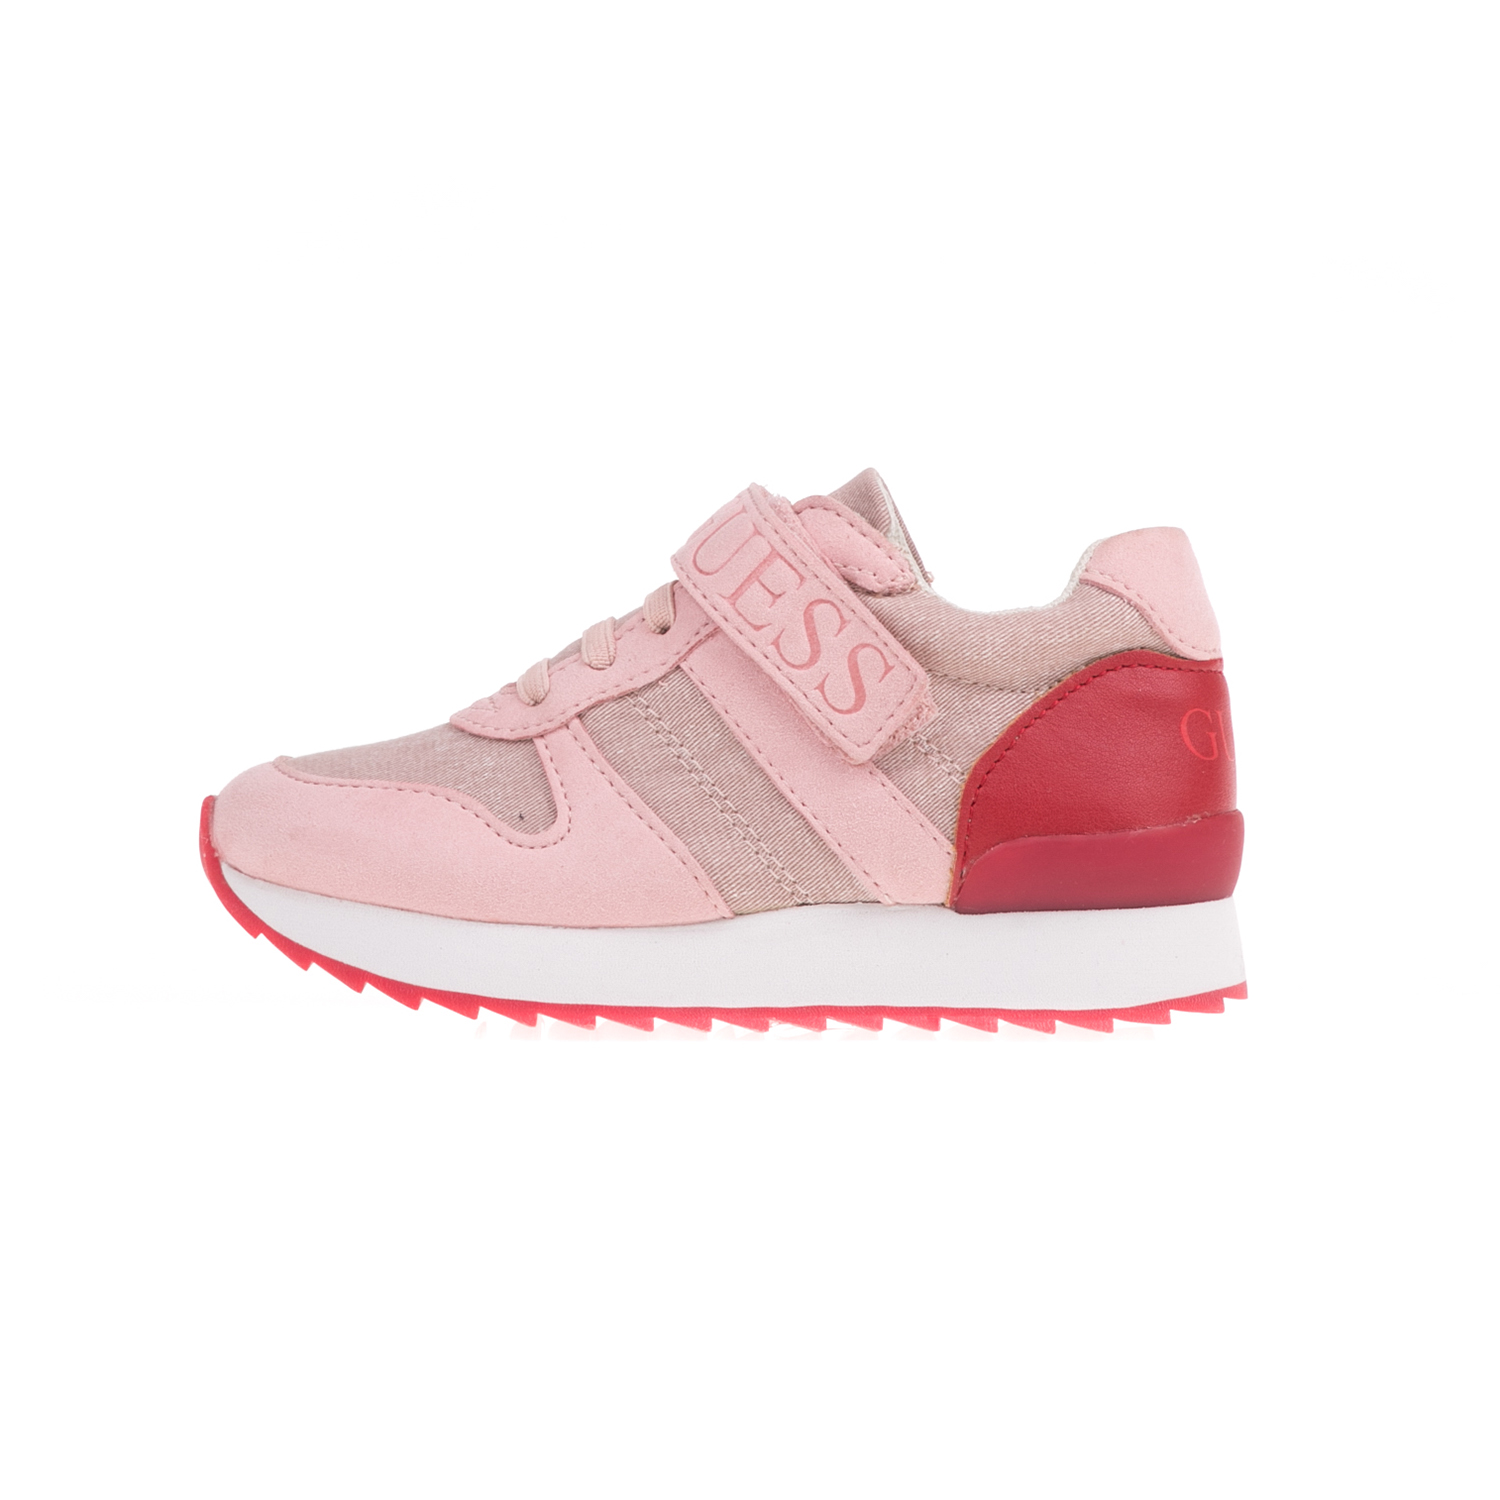 GUESS KIDS - Κοριτσίστικα sneakers GUESS KIDS RUDY ροζ παιδικά boys παπούτσια sneakers